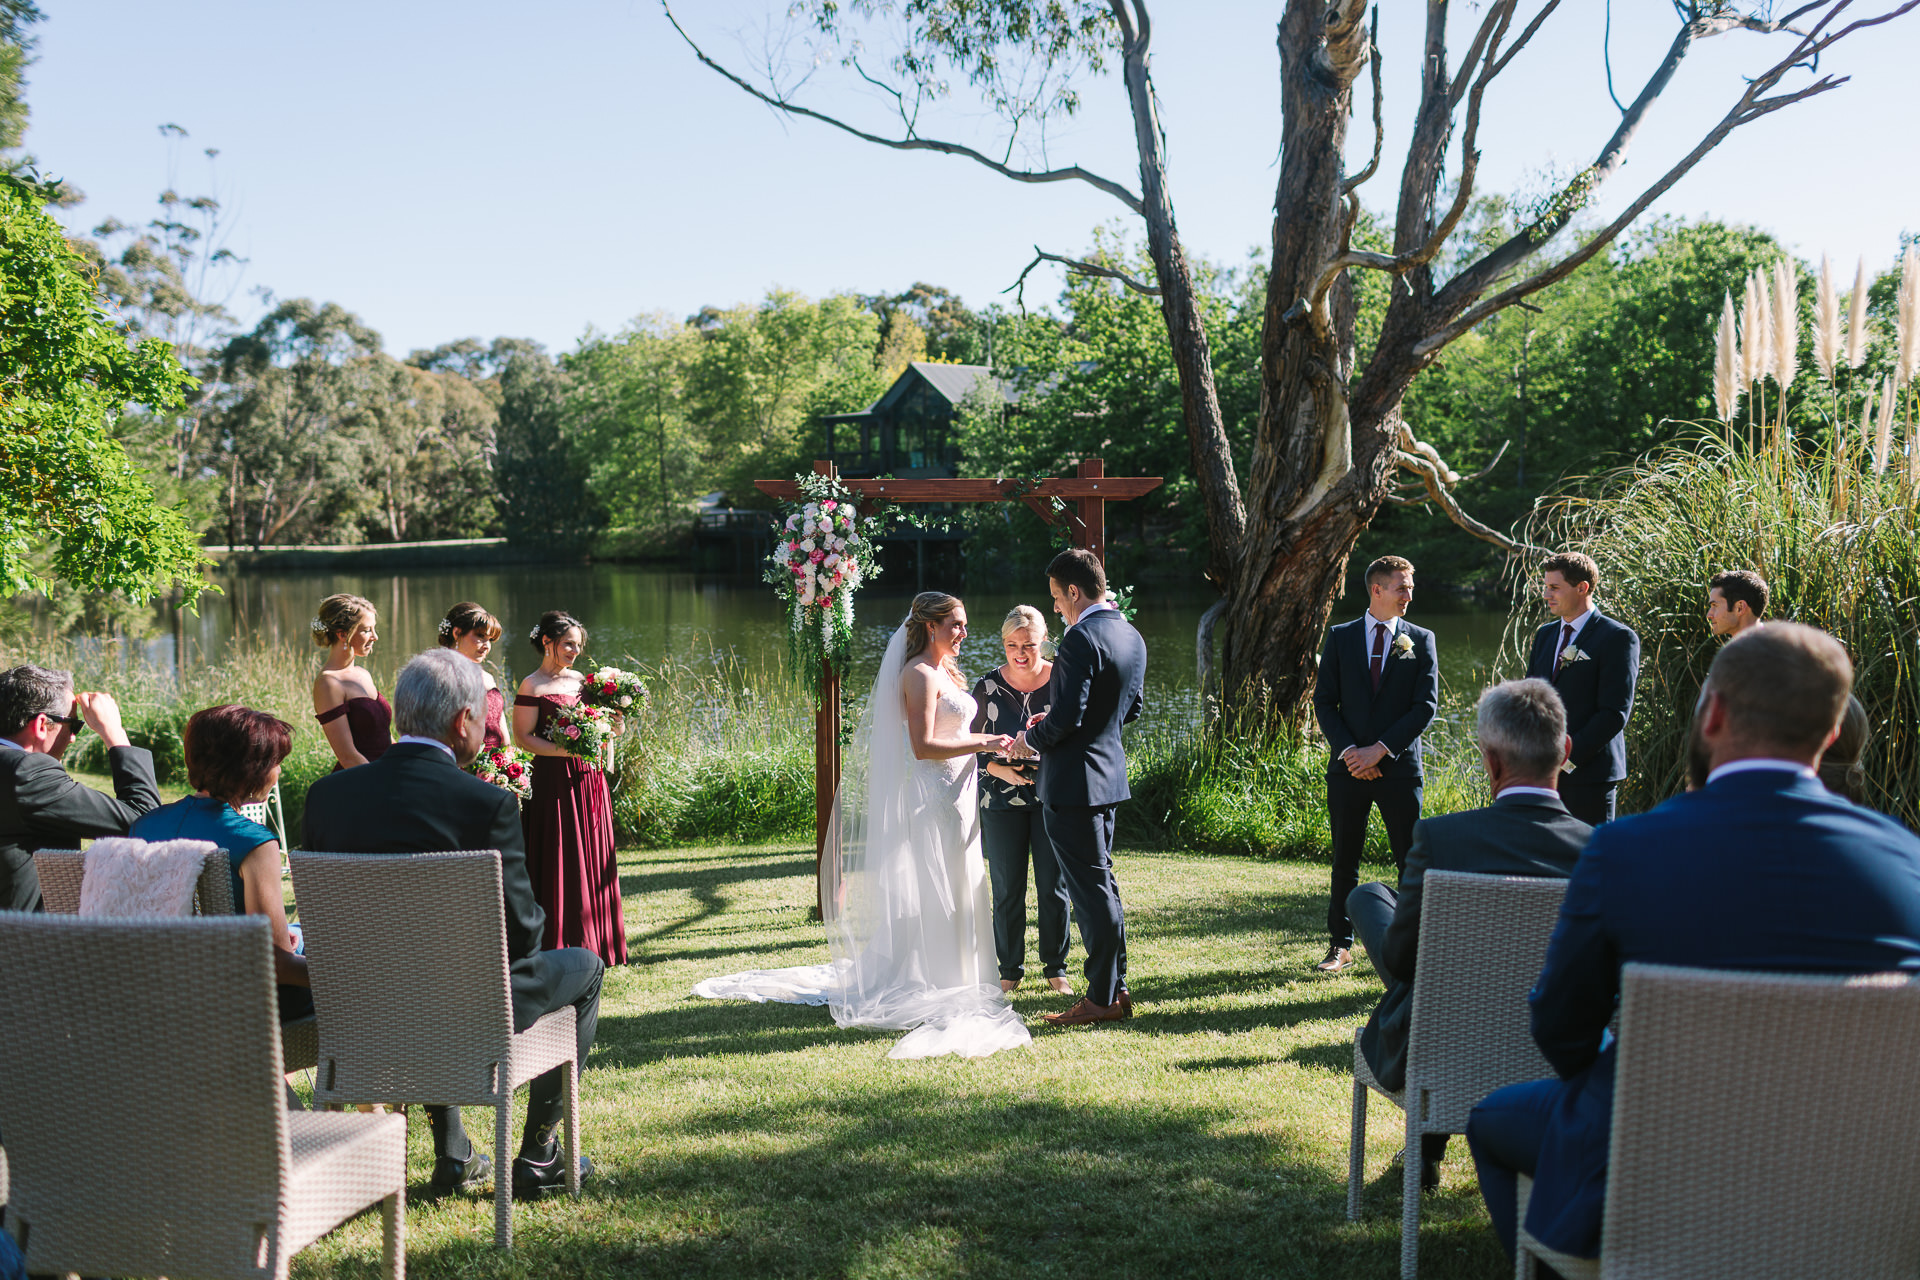 ceremony location by the lake at K1 winery in Kuitpo near mclarenvale